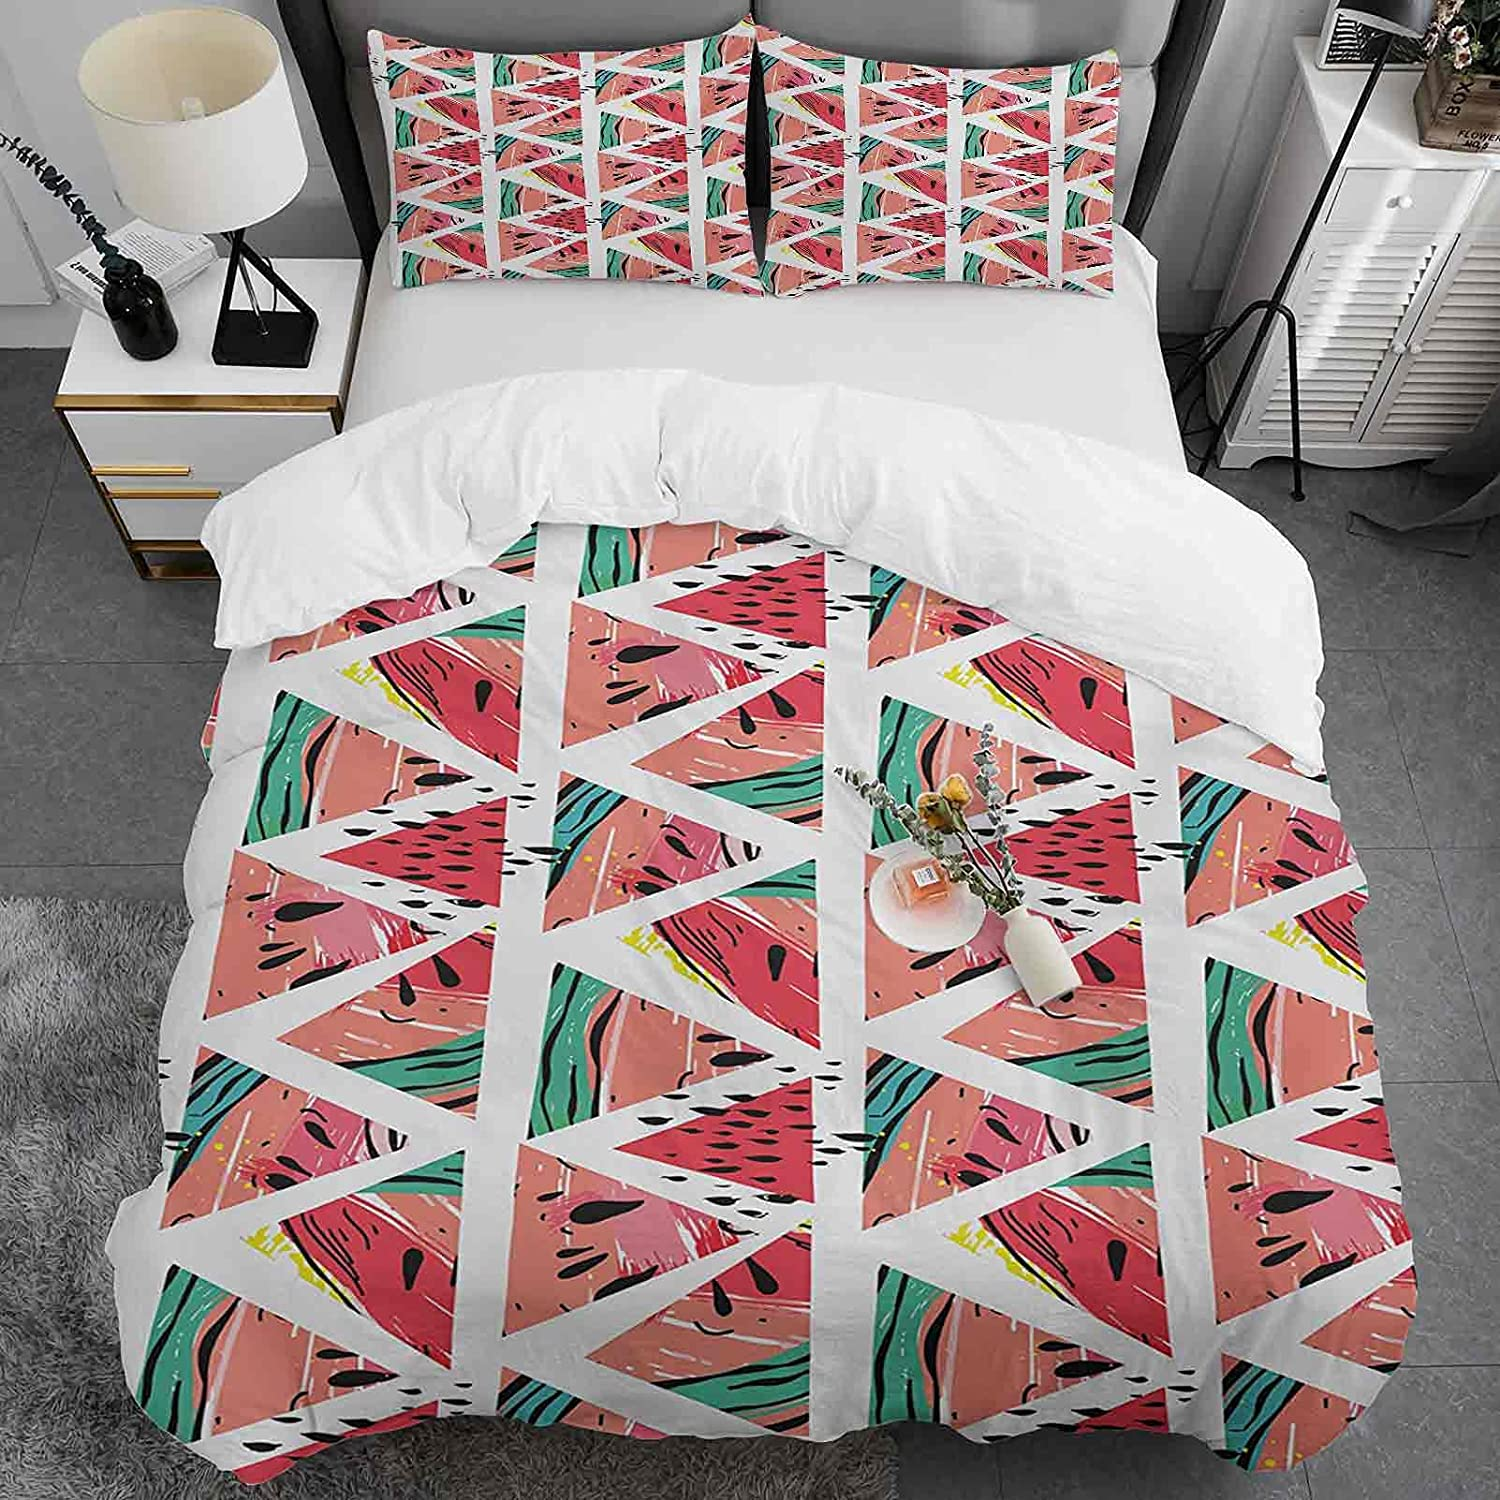 Watercolor Special sale item Duvet Cover Set Twin Size Patter Attention brand Abstract Watermelon